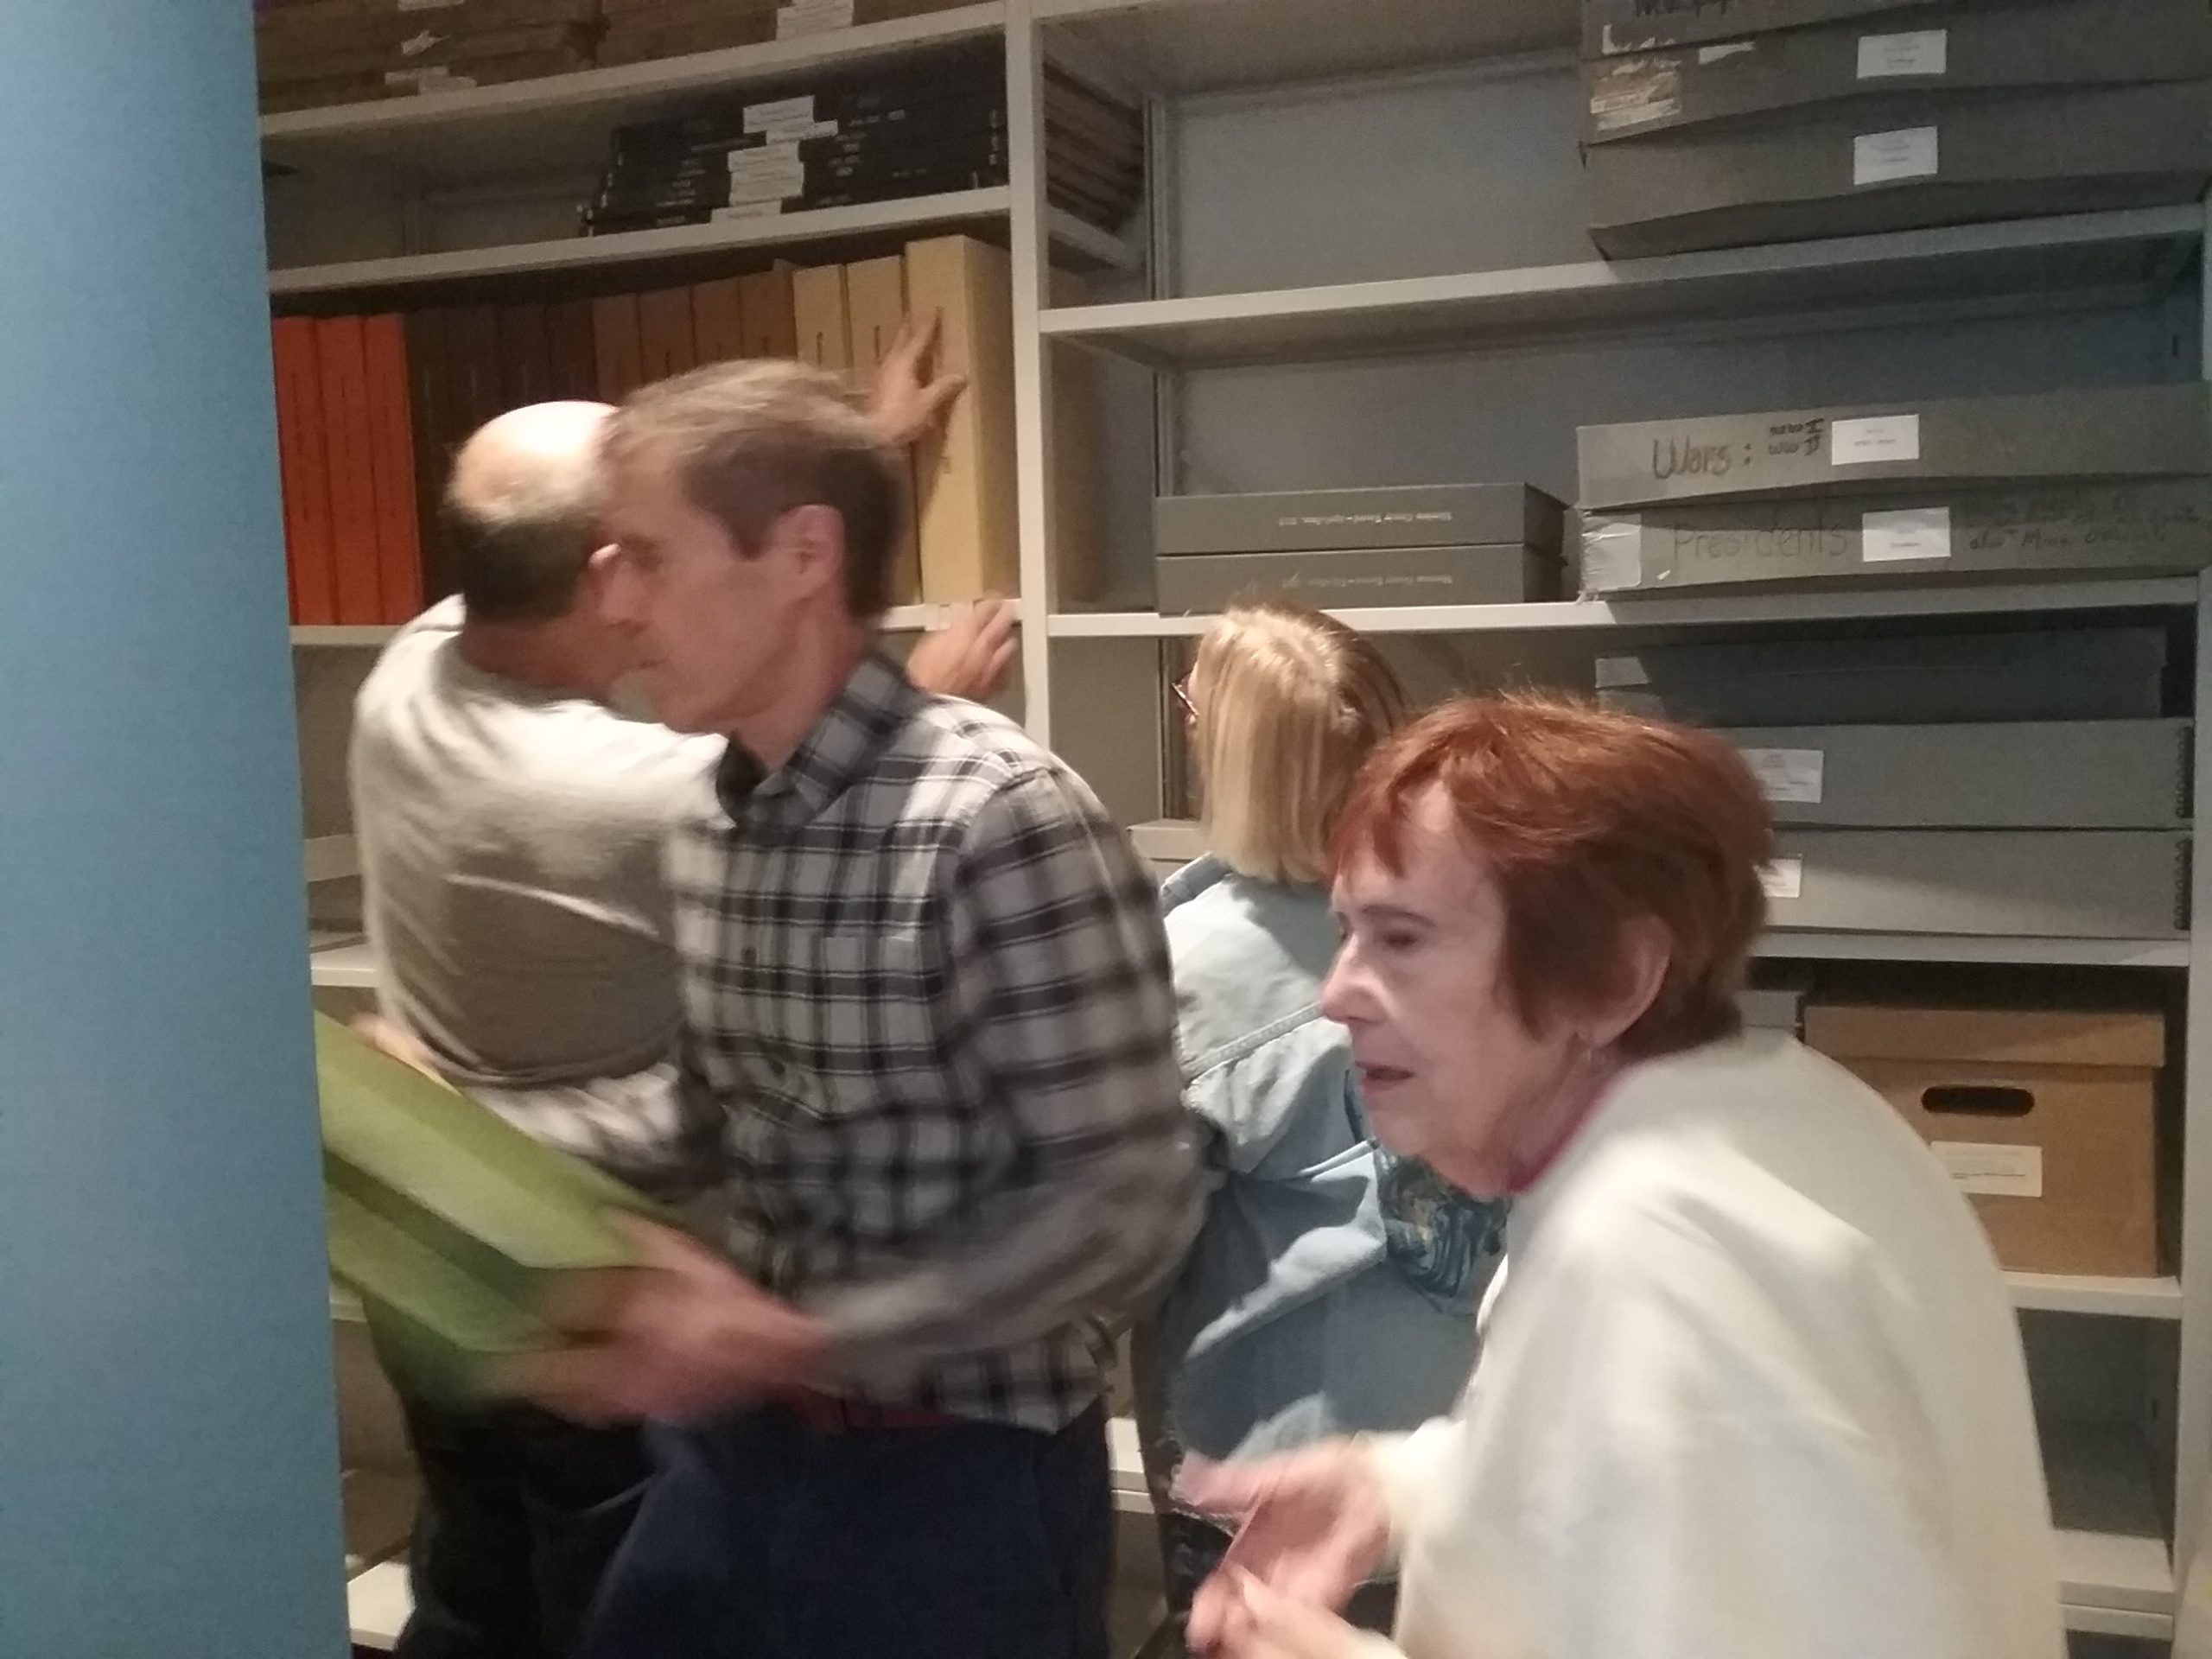 Peter, Cathy, Gary, and Pat putting newspapers on the new mobile shelving in the Archives at the Weyerhaeuser Museum, December 21, 2019.